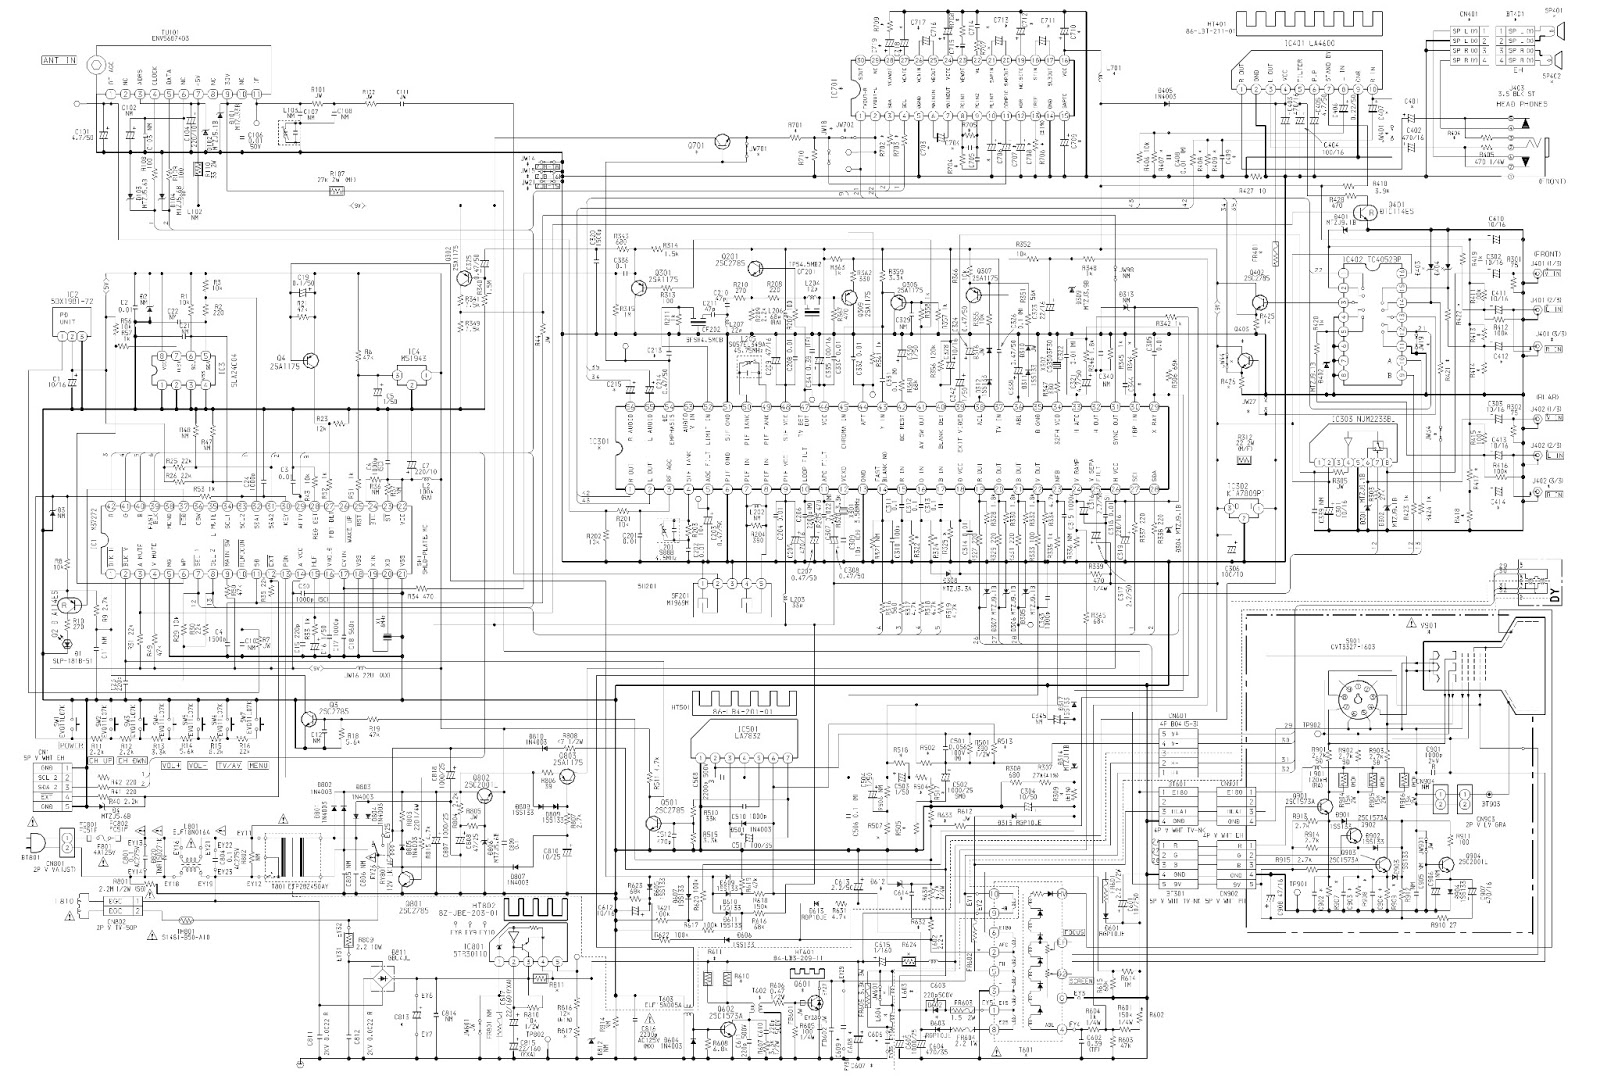 untitled.bmp aiwa tv c1300 tv cn140 schematic diagram [circuit diagram aiwa cdc-x144 wiring diagram at bayanpartner.co